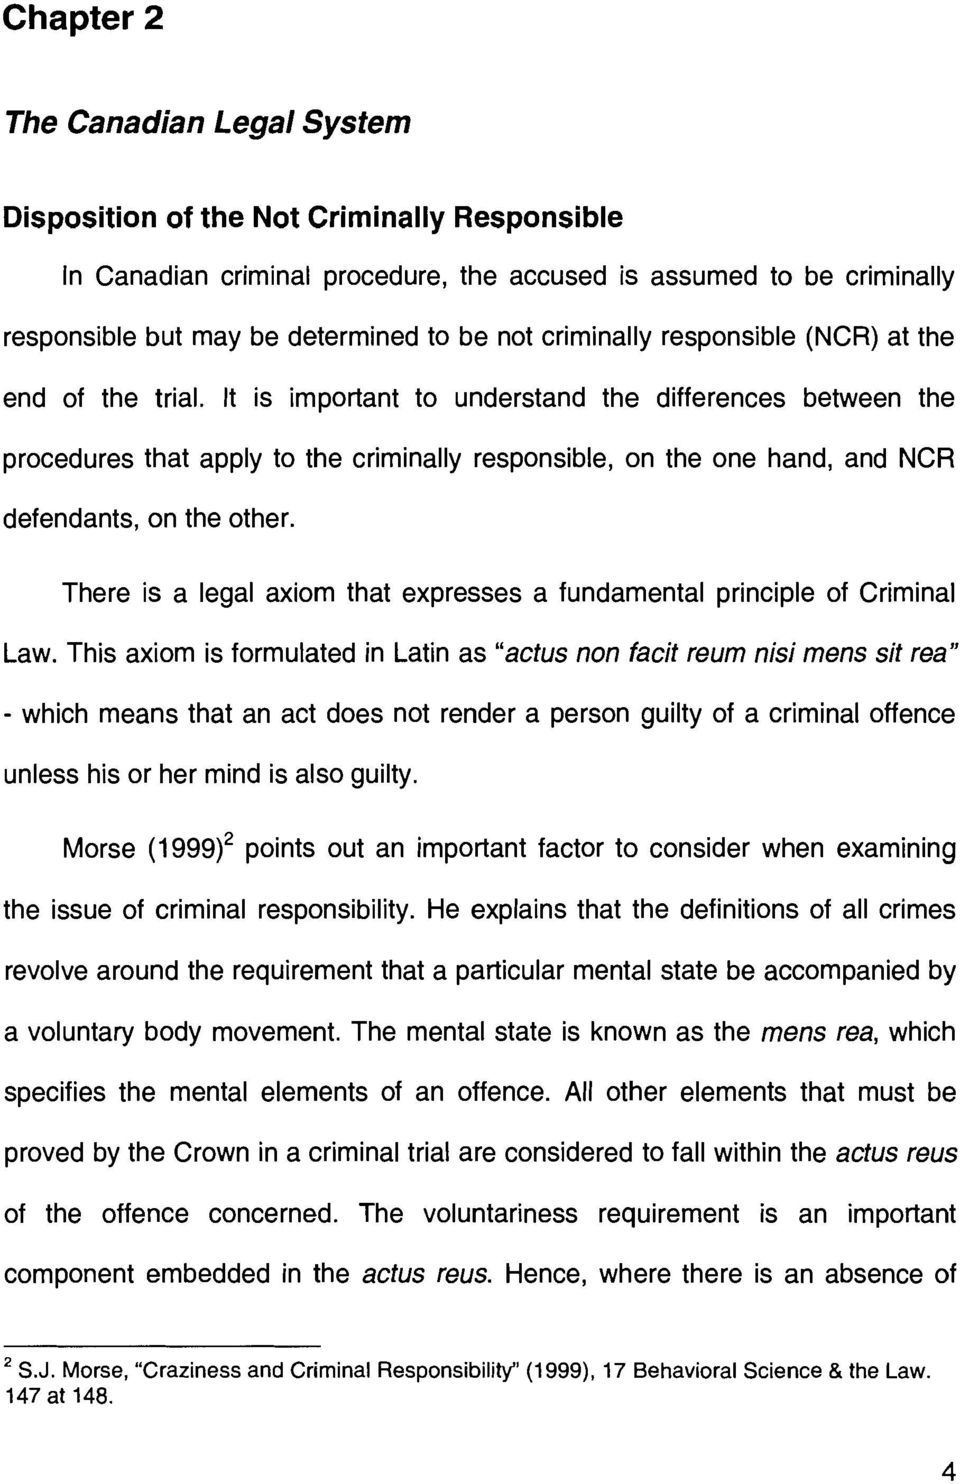 It is important to understand the differences between the procedures that apply to the criminally responsible, on the one hand, and NCR defendants, on the other.